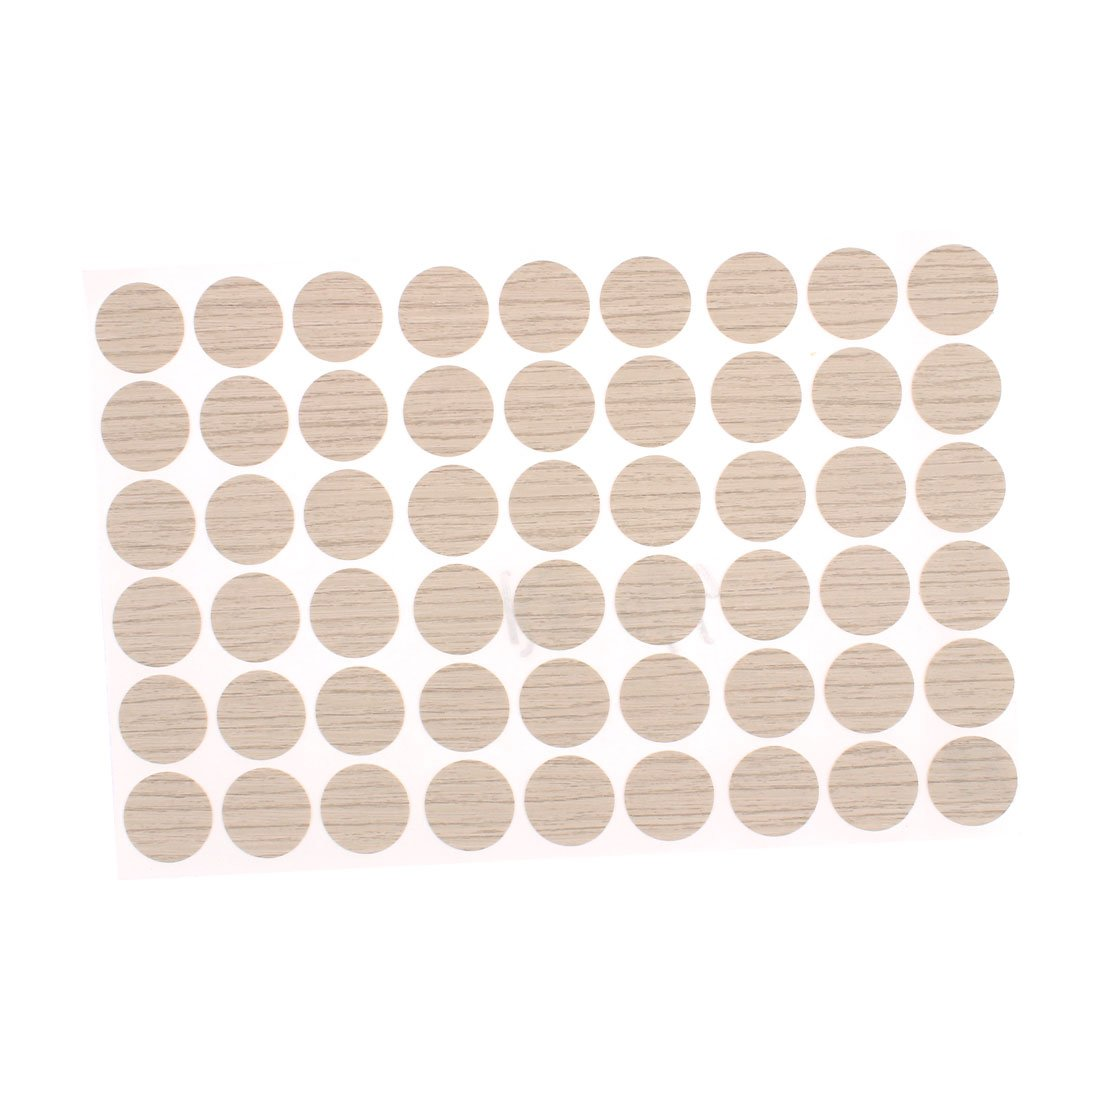 Furniture Self-Adhesive Screw Covers Caps Stickers Decoration 54 in 1